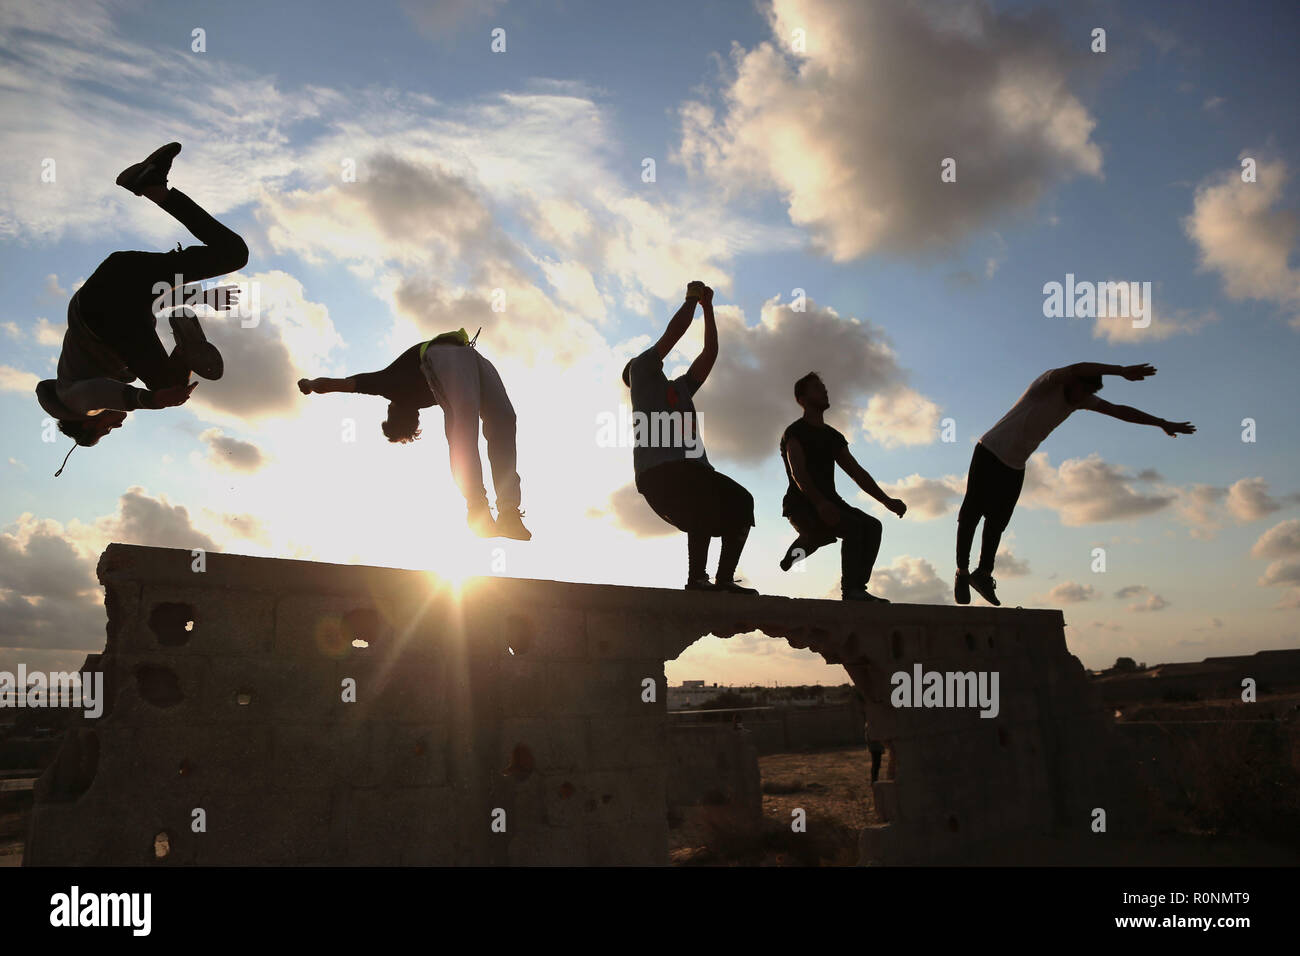 Palestinian youths are seen performing a Parkour jump together at sunset during their Parkour practice at the war-torn building in Gaza. Gaza has one of the highest youth unemployment rate in the world with over 80% of young people under the age of 30 being unemployed, Parkour is one of the ways for the youth to spend their long afternoons and keep themselves fit. - Stock Image